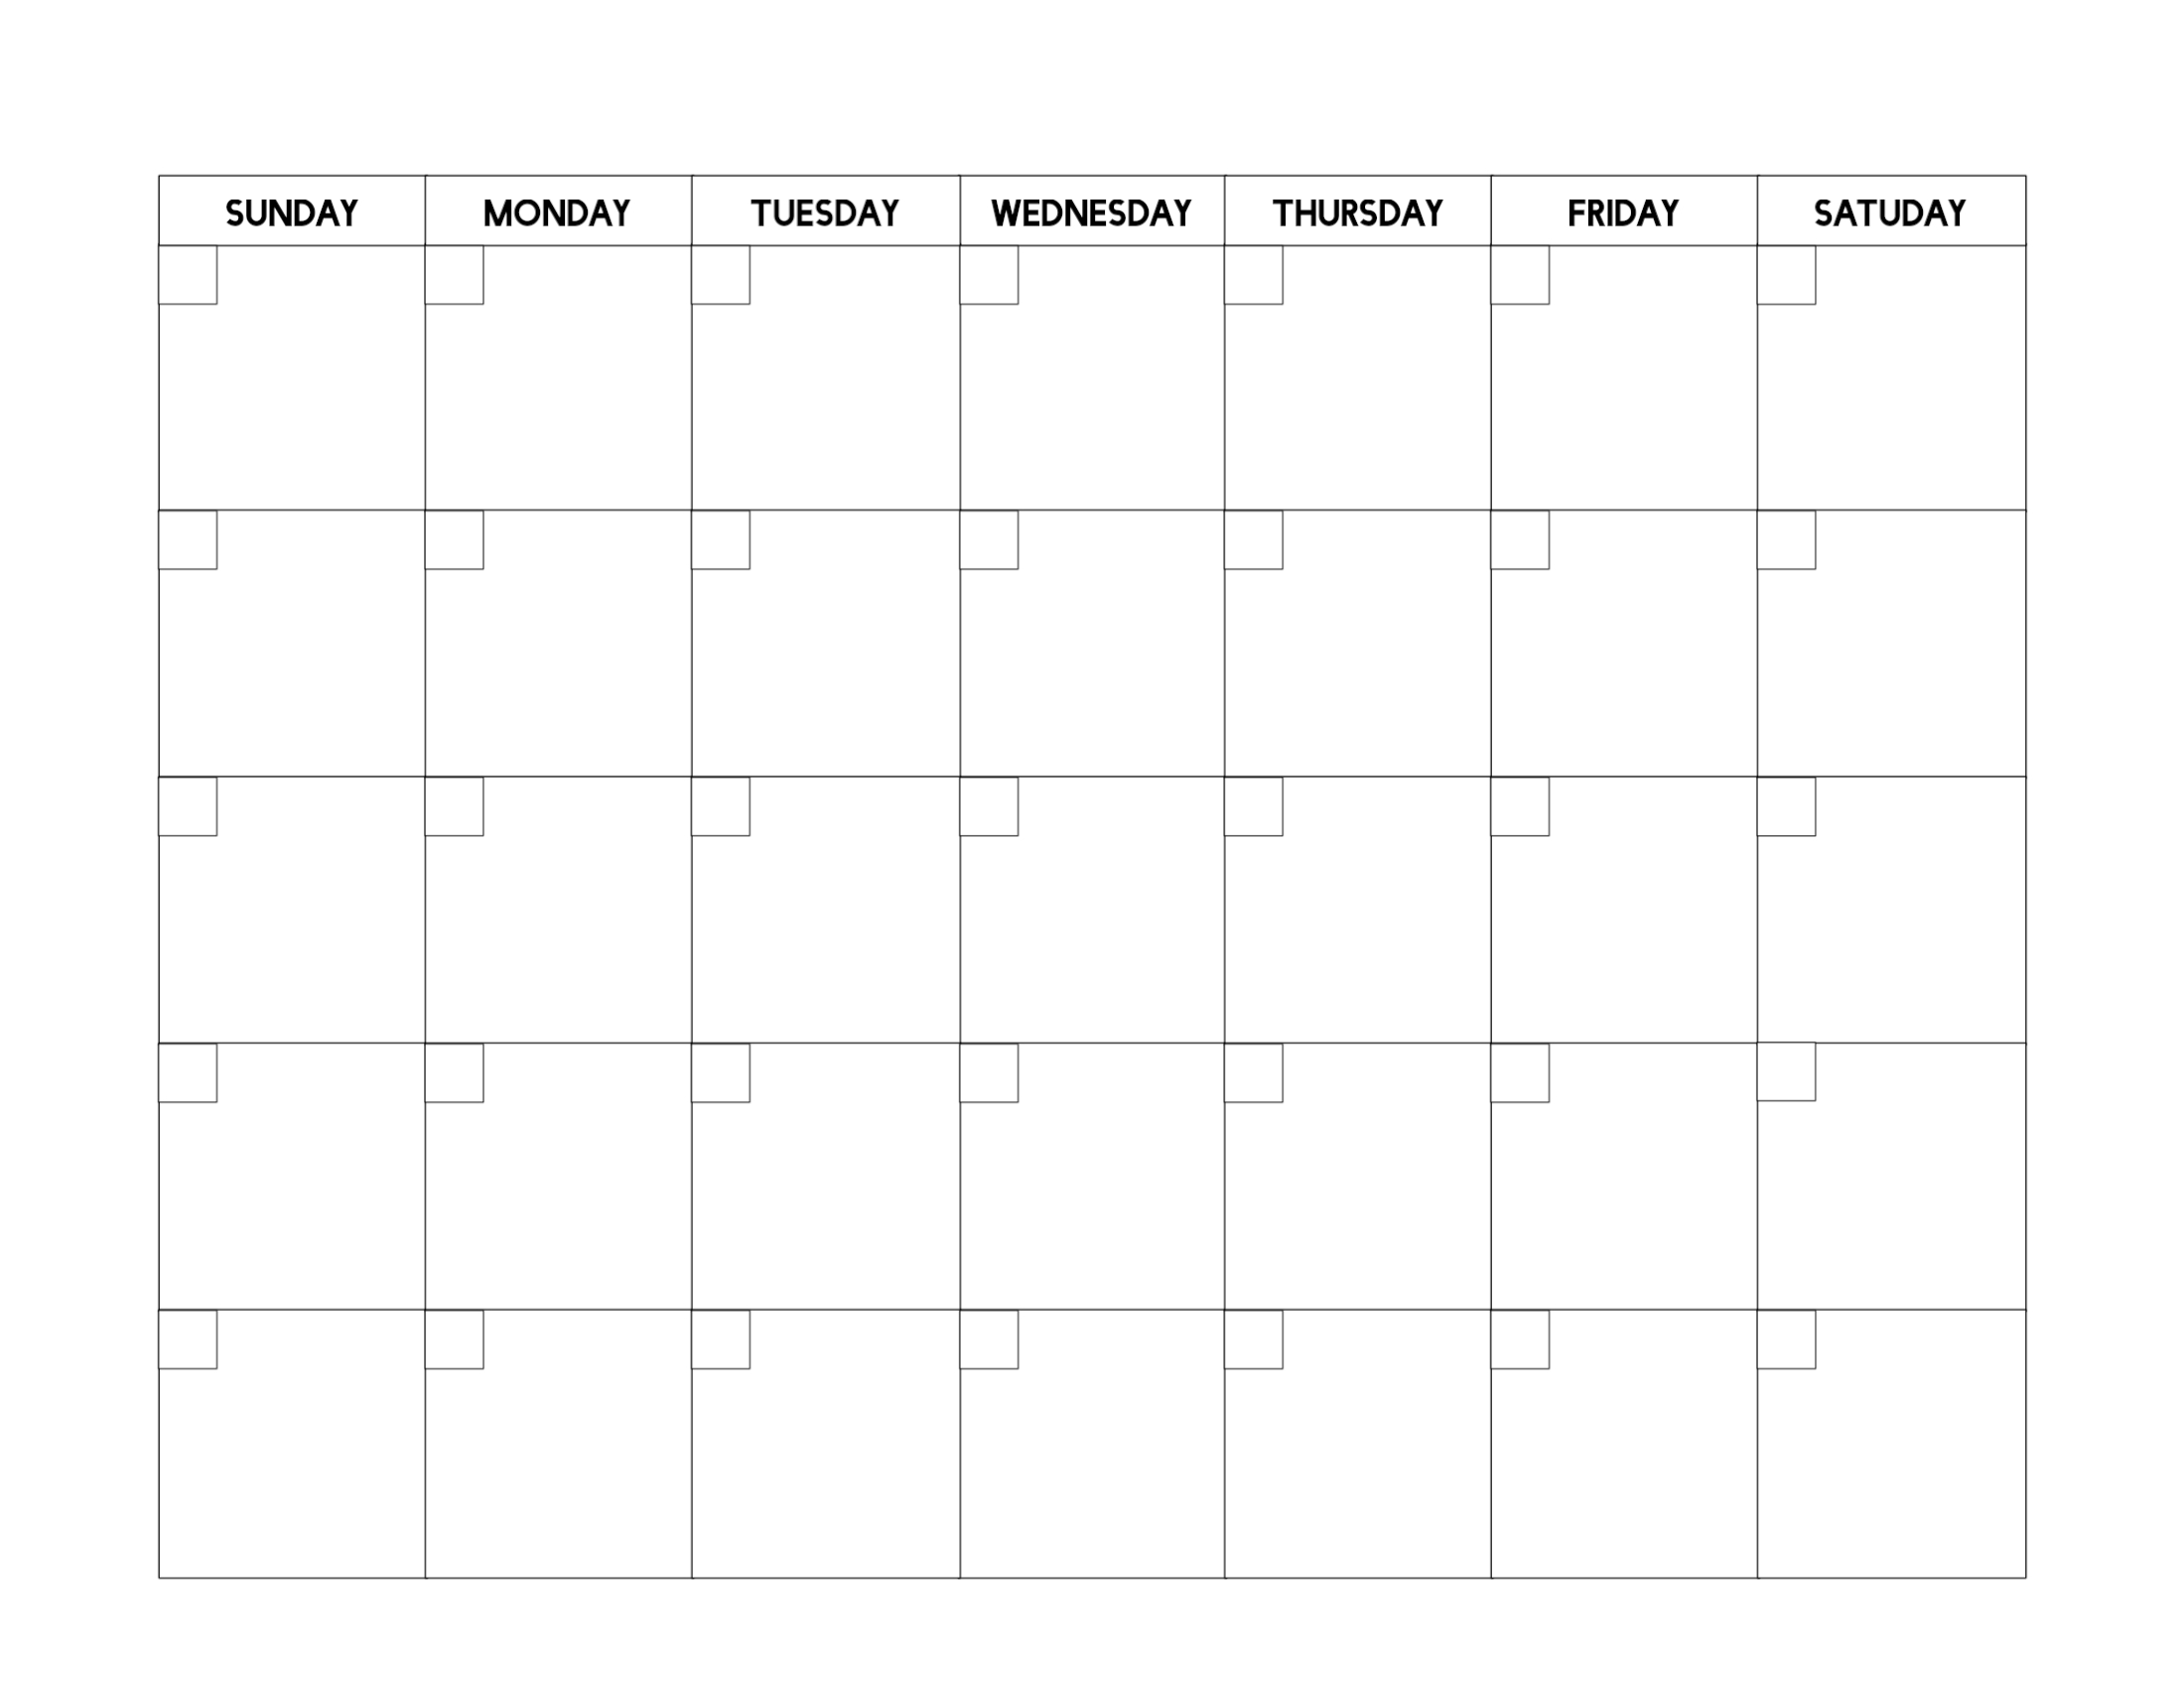 Calendar Fill In Templates | Calendar Template Printable Calendars To Fill In And Print